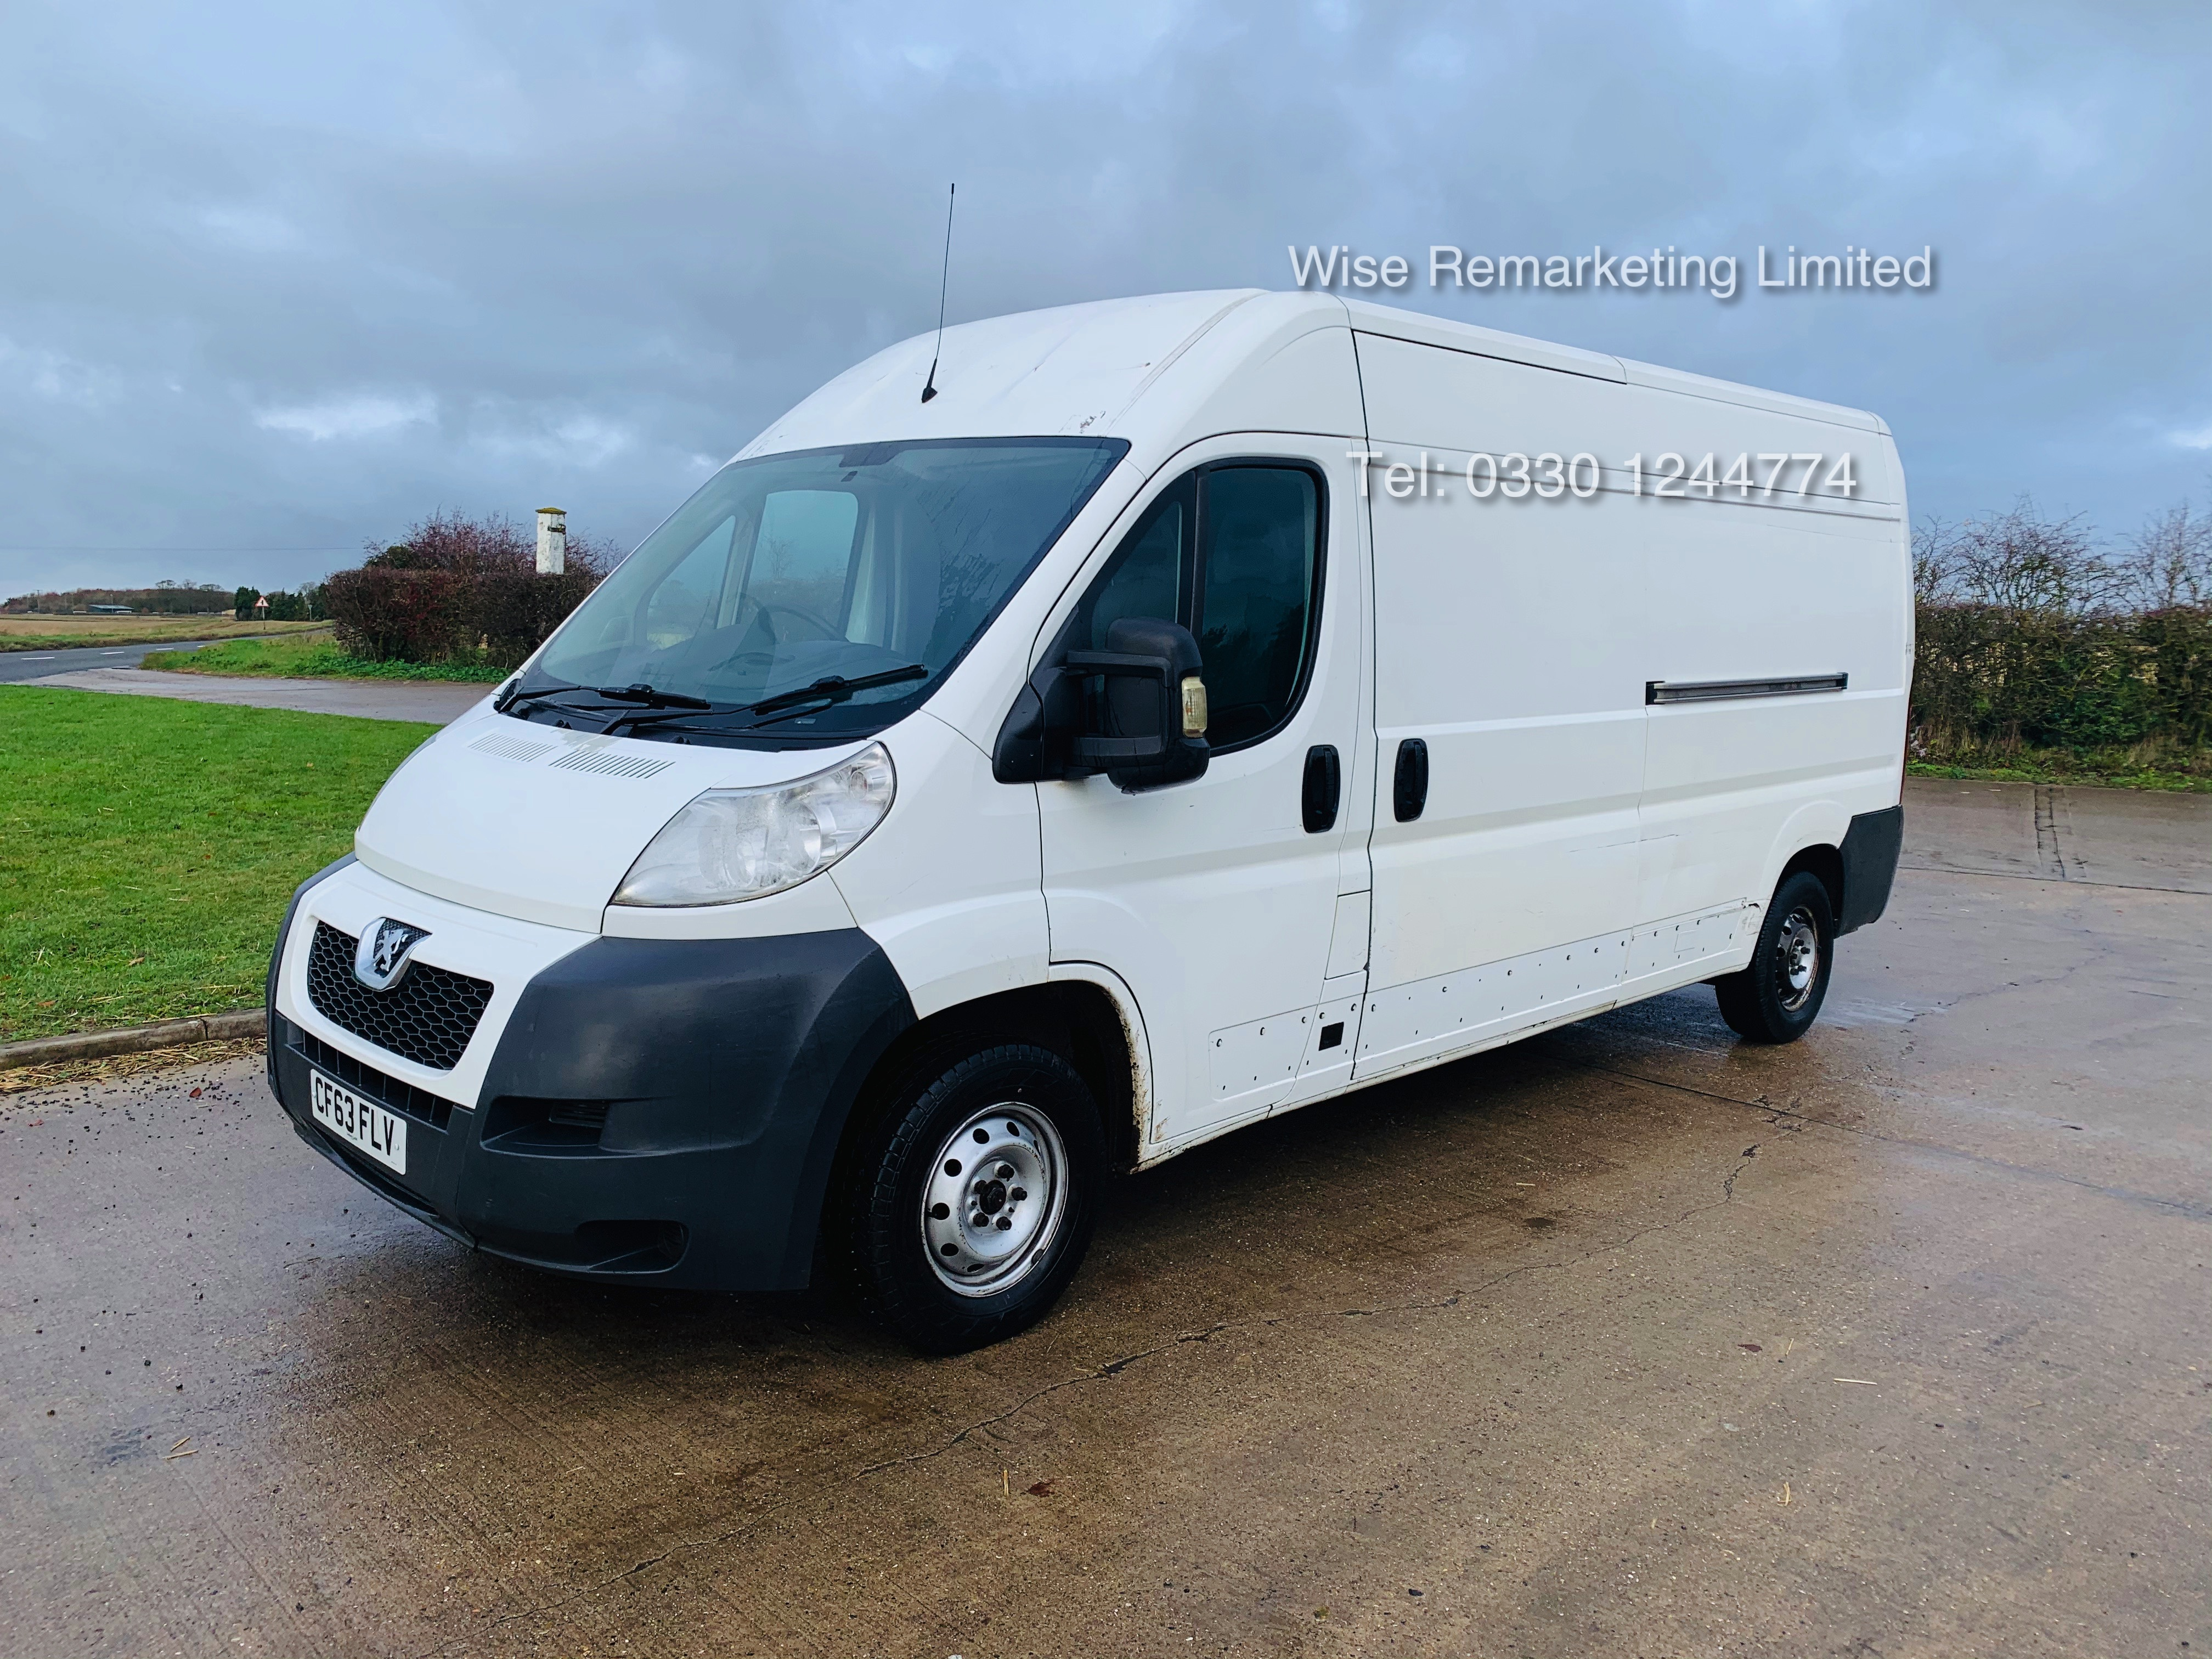 Peugeot Boxer 335 2.2 HDi (L3H2) 2014 Model - 1 Keeper From New - Long Wheel Base